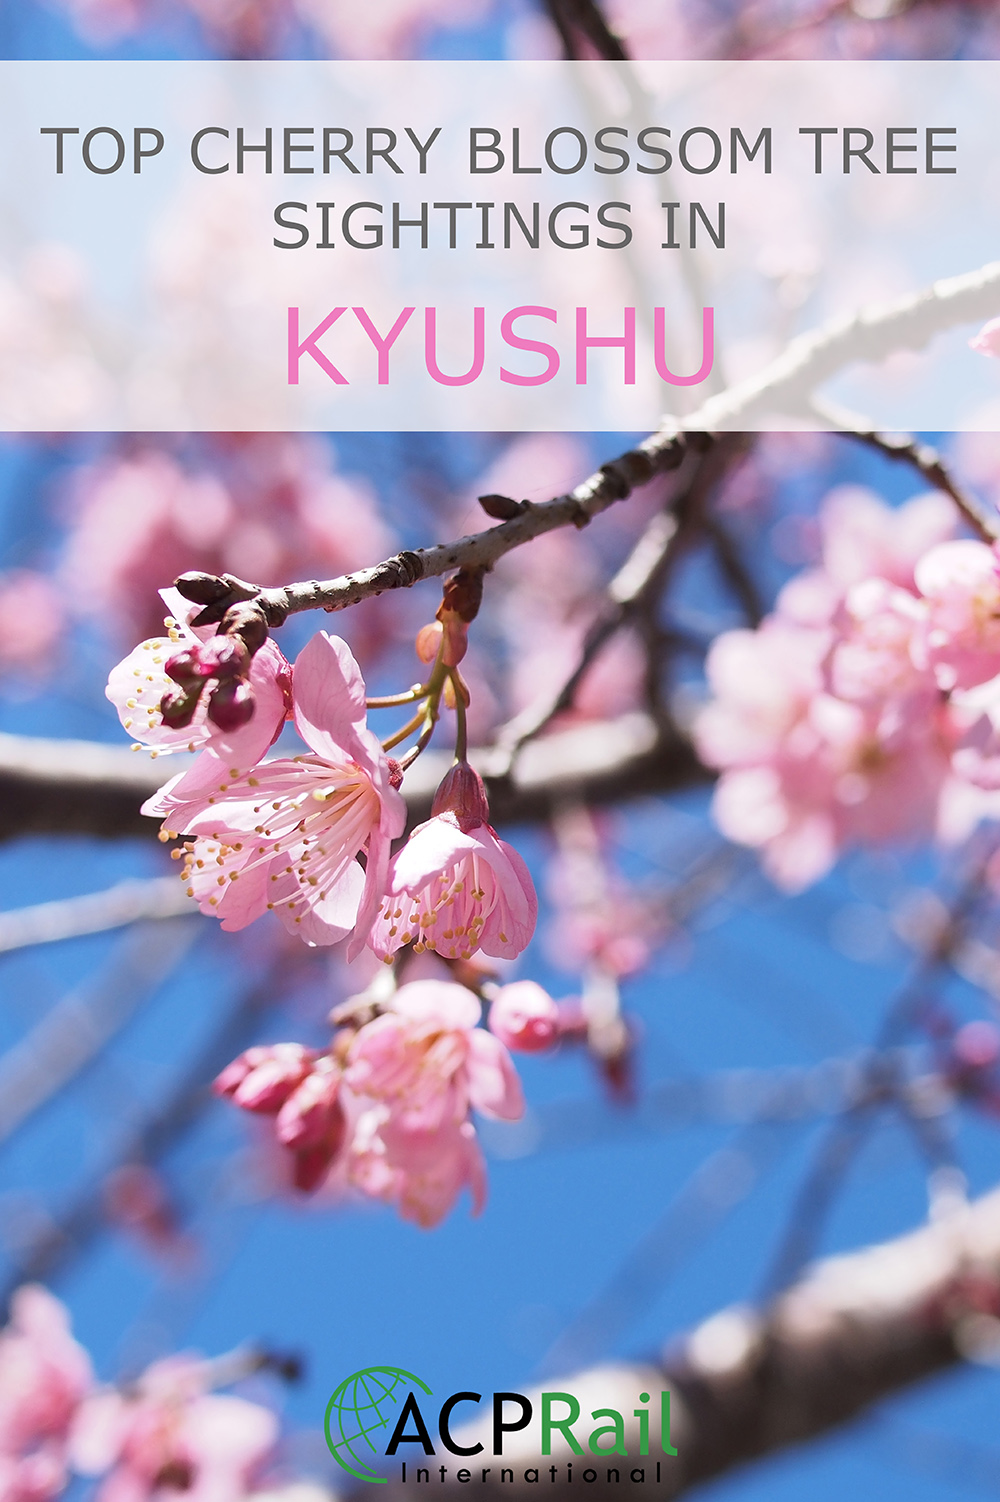 Top Cherry Blossom Tree Sightings in Kyushu